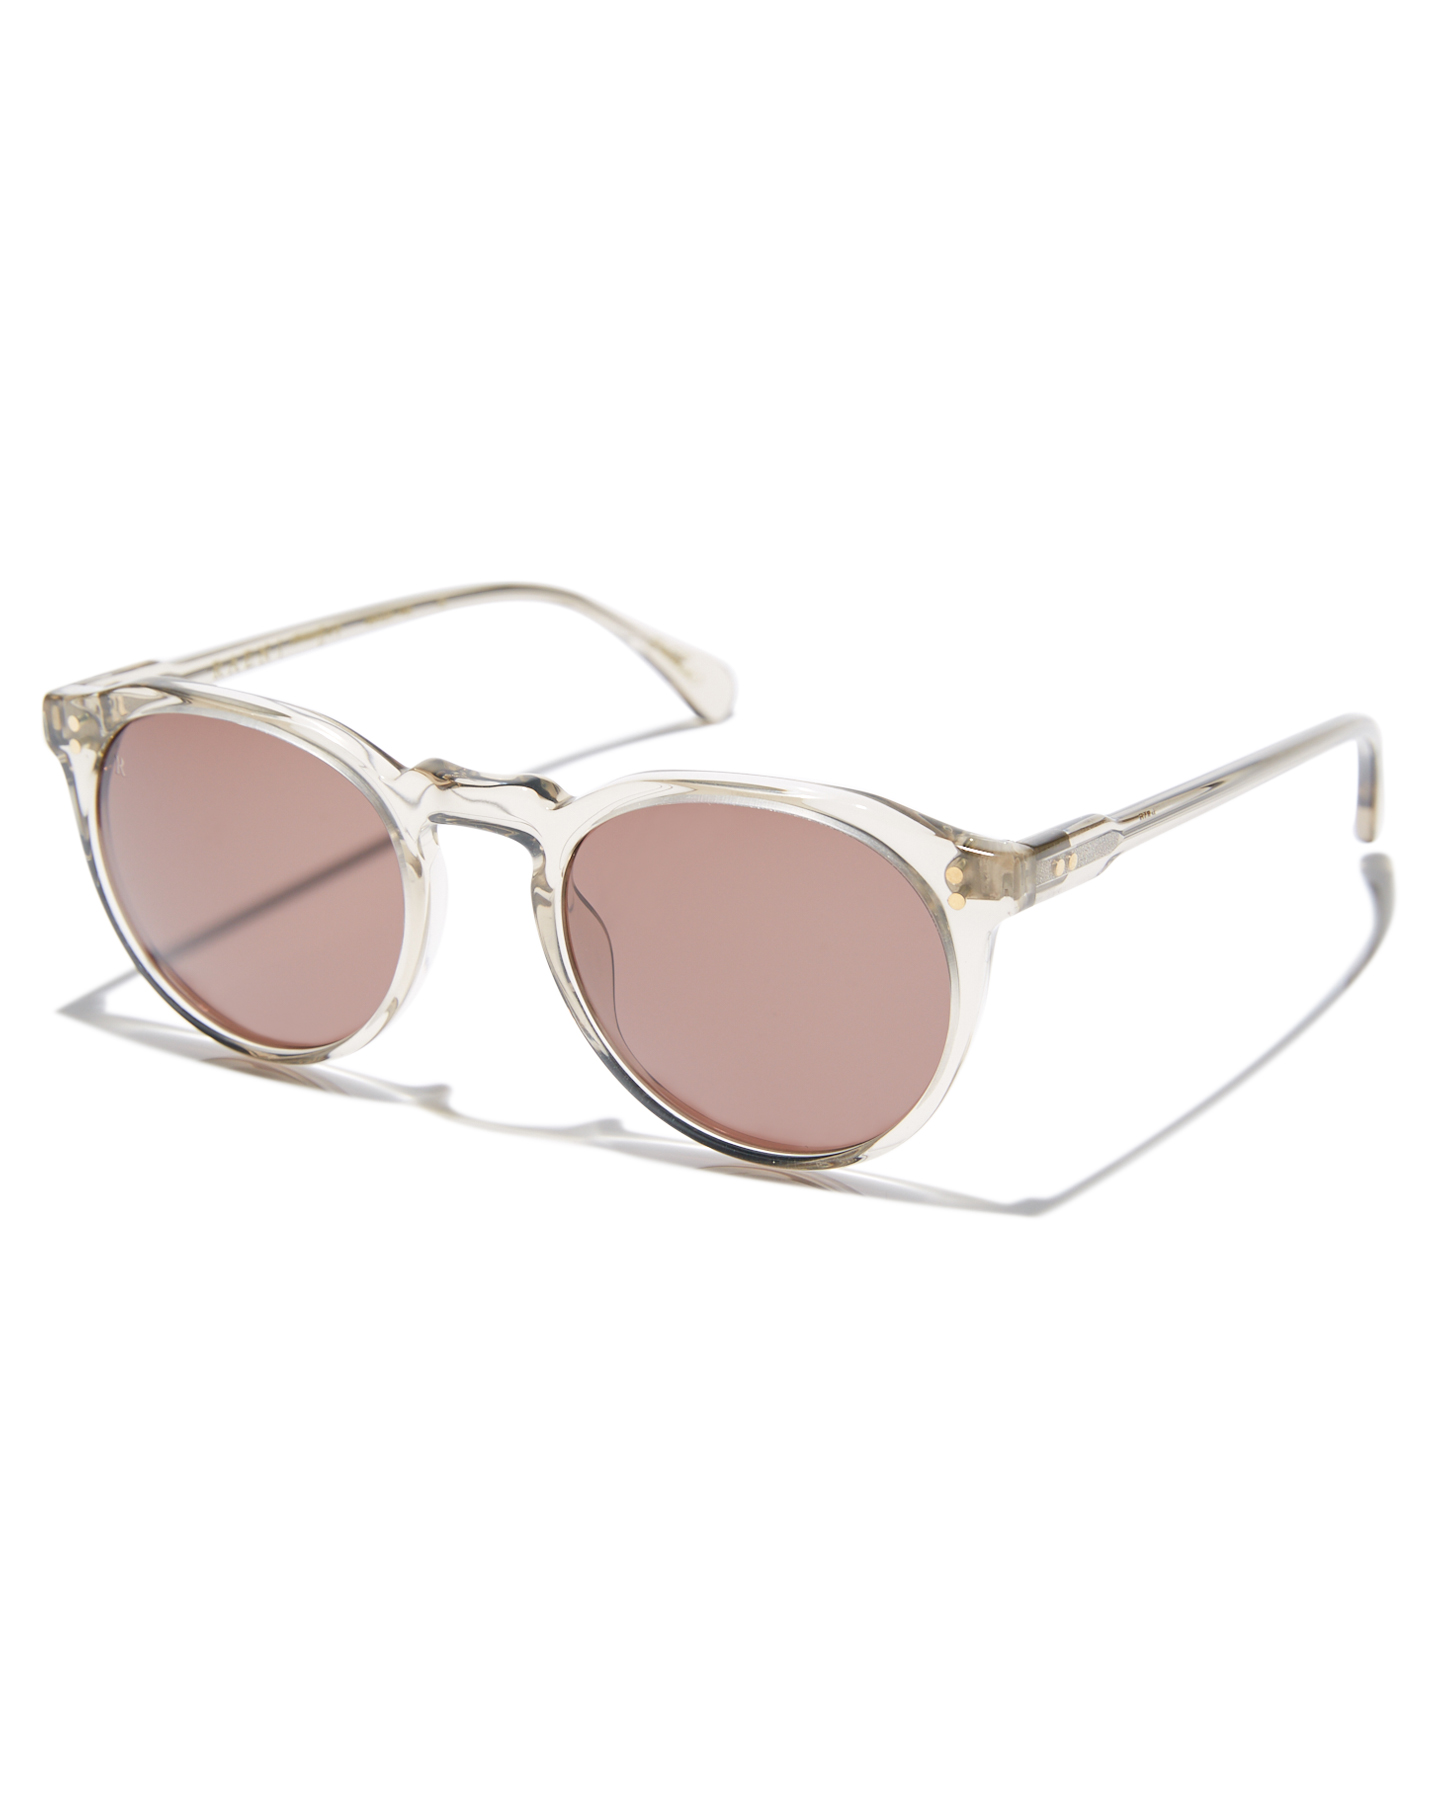 3a6ac75bf Buy Crap The Shake Appeal… Raen Remmy 49 Sunglasses Haze Crystal Haze  Crystal Mens sunglasses Available on sale now in size ...